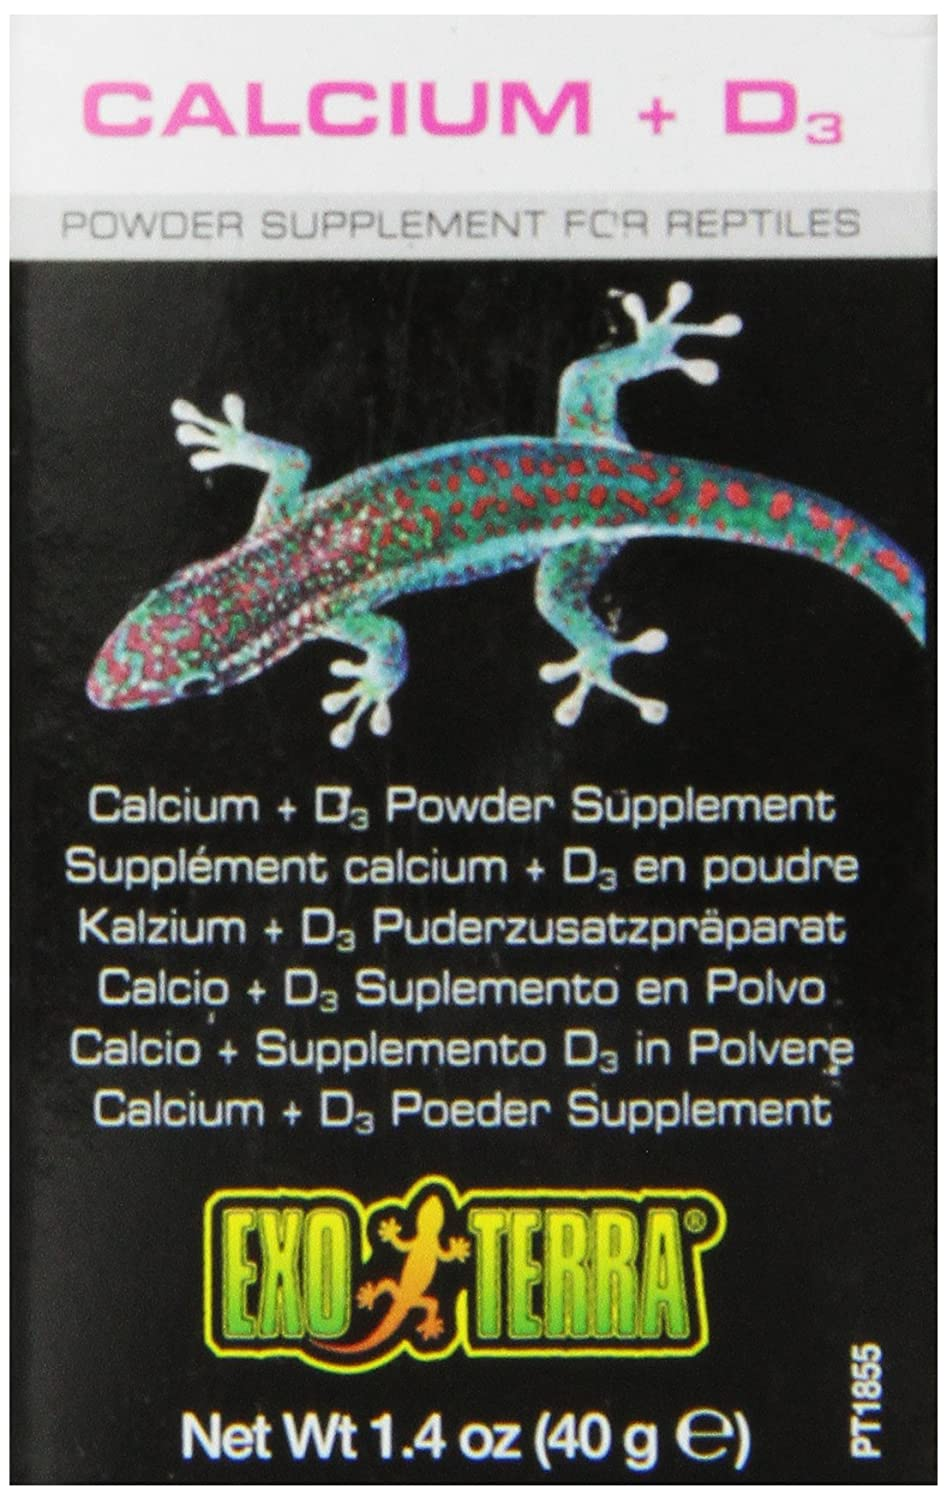 Exo Terra Calcium + D3 Powder Reptiles Supplement, 1.4-Ounce PT1855